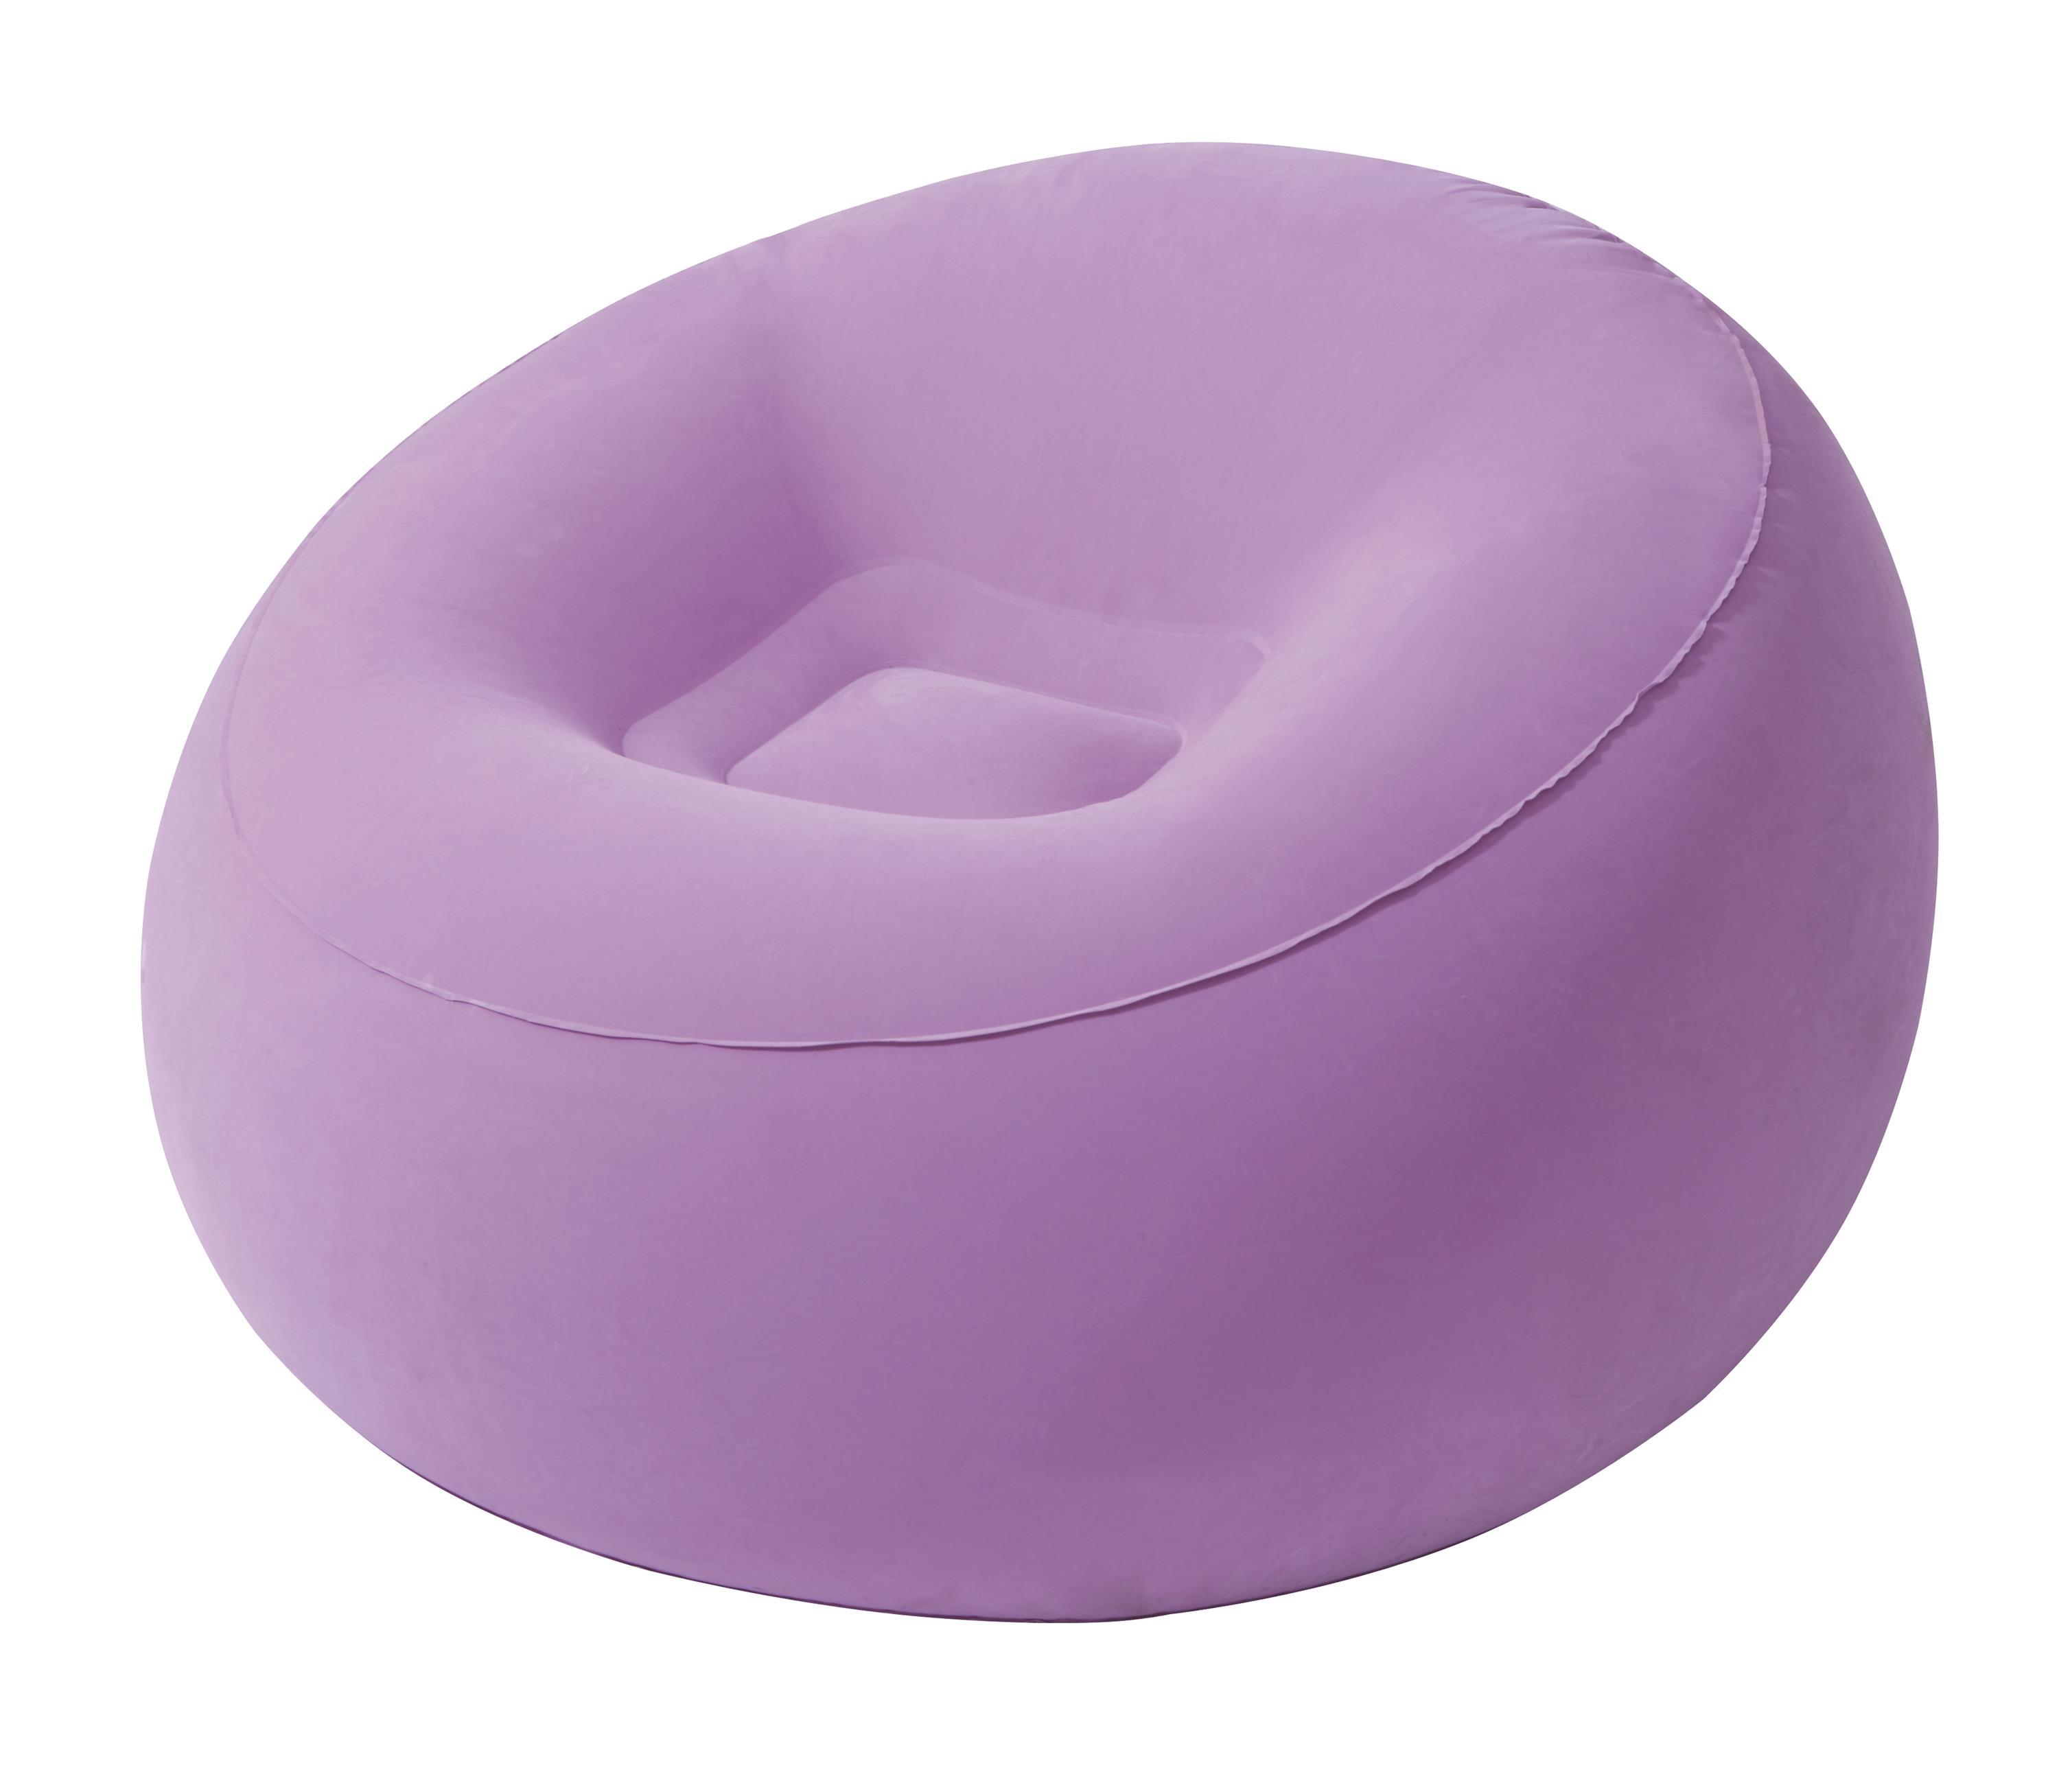 Round flocked sofa